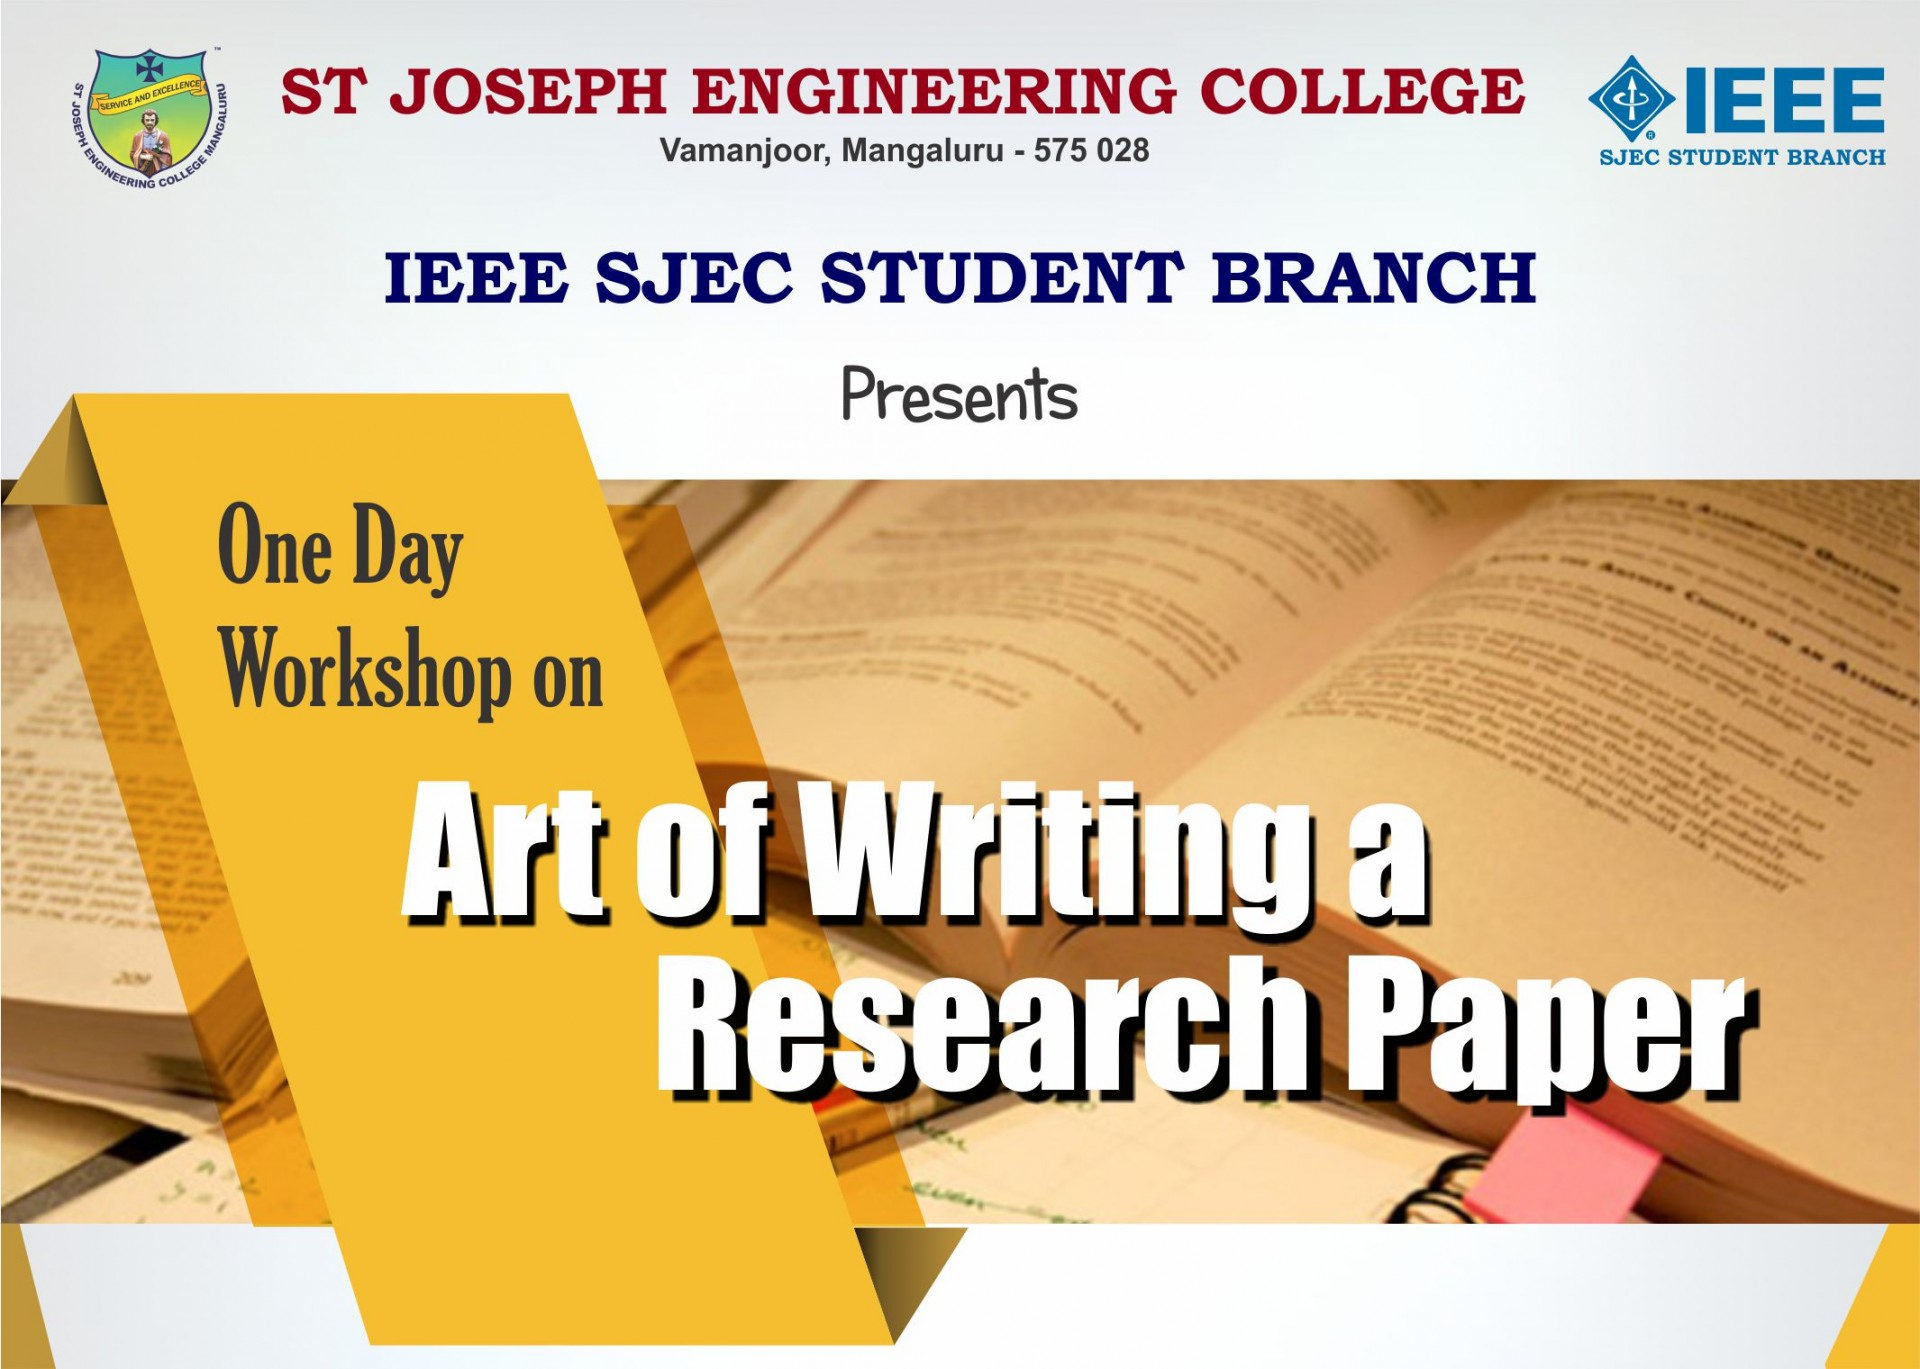 006 Workshop Banner Writing Of Research Fascinating Paper Great Pdf Harvard Style Sample 1920